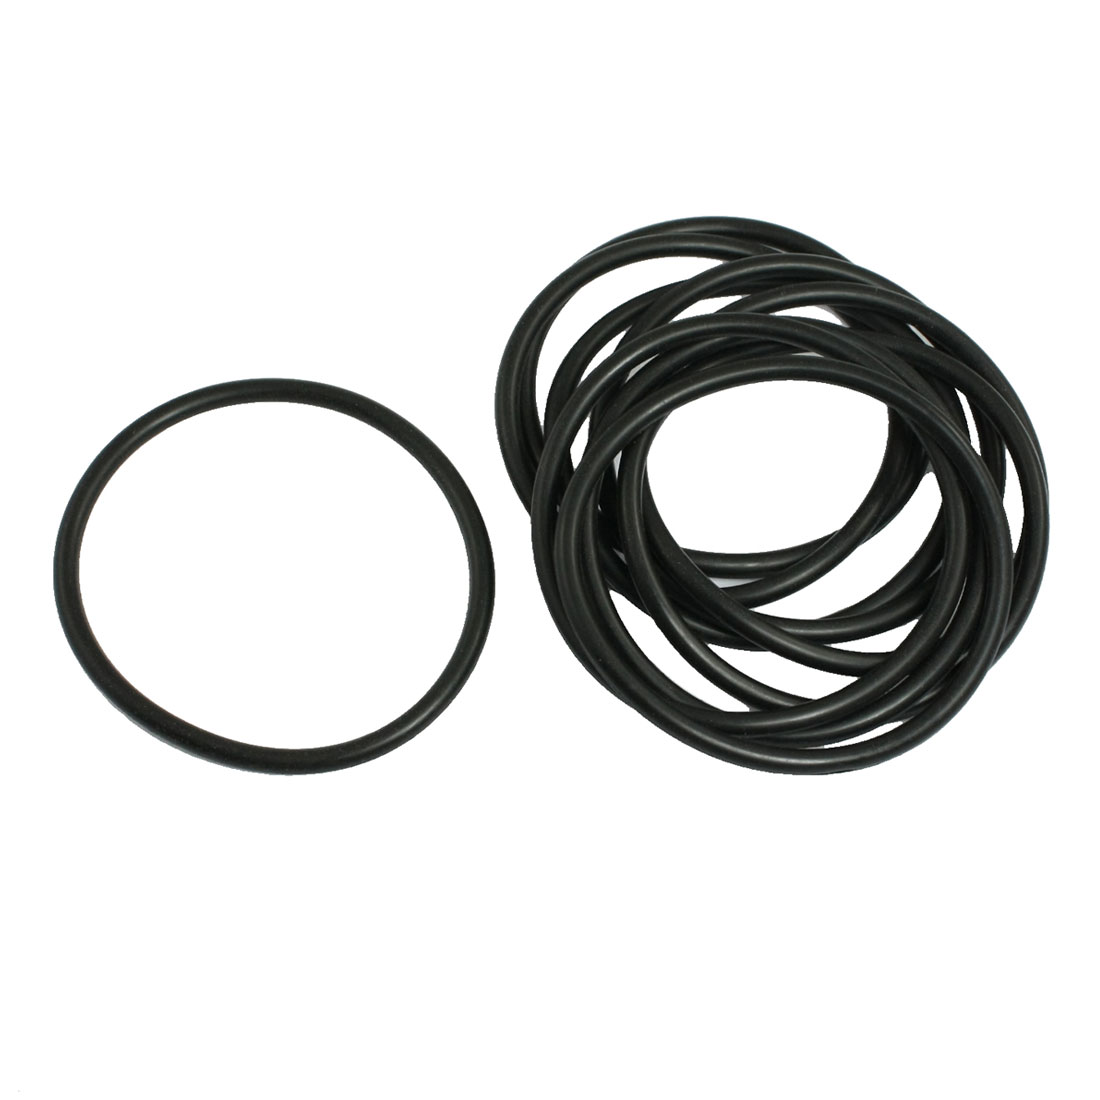 10 Pcs 70mm x 4mm x 62mm Mechanical Black NBR O Rings Oil Seal Washers